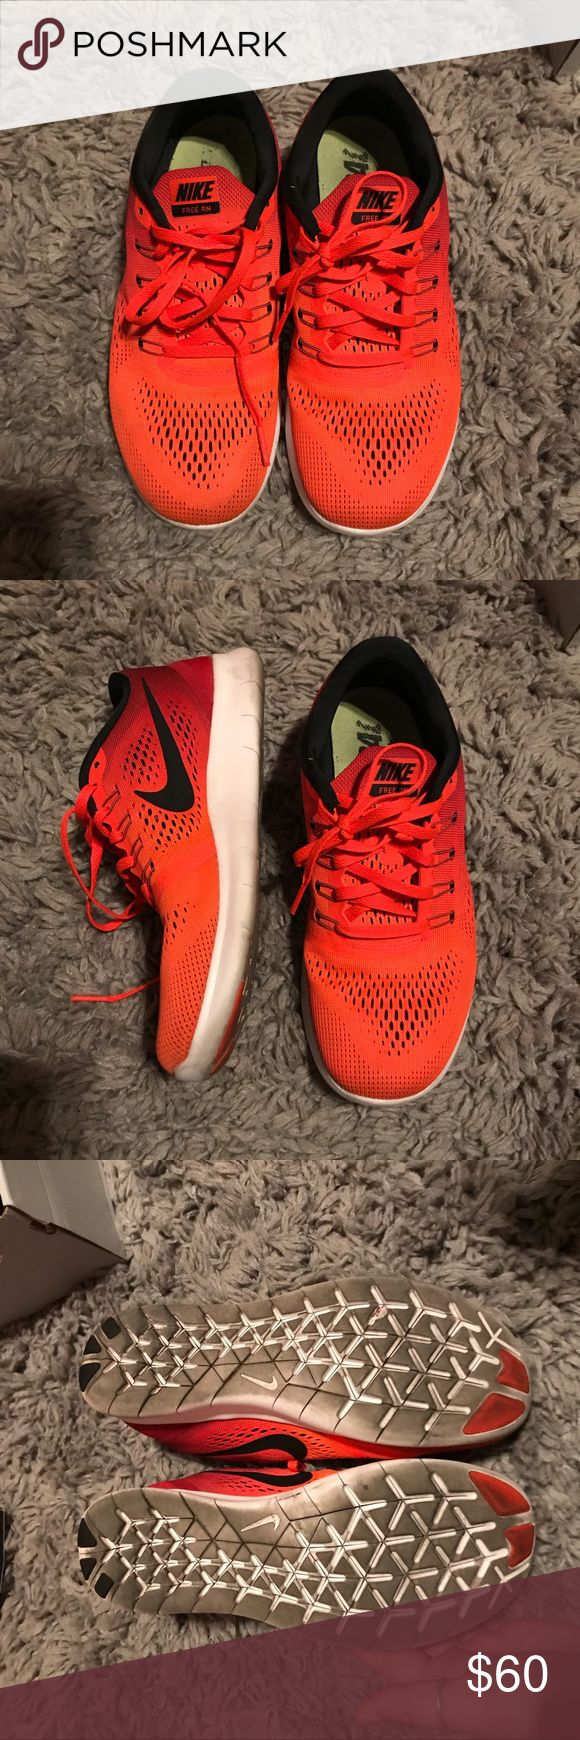 RED NIKE FREE RN SIZE 8.5 Nike free Rn running shoe Size 8.5 Next or same day ship Feel free to ask questions :) Nike Shoes Sneakers